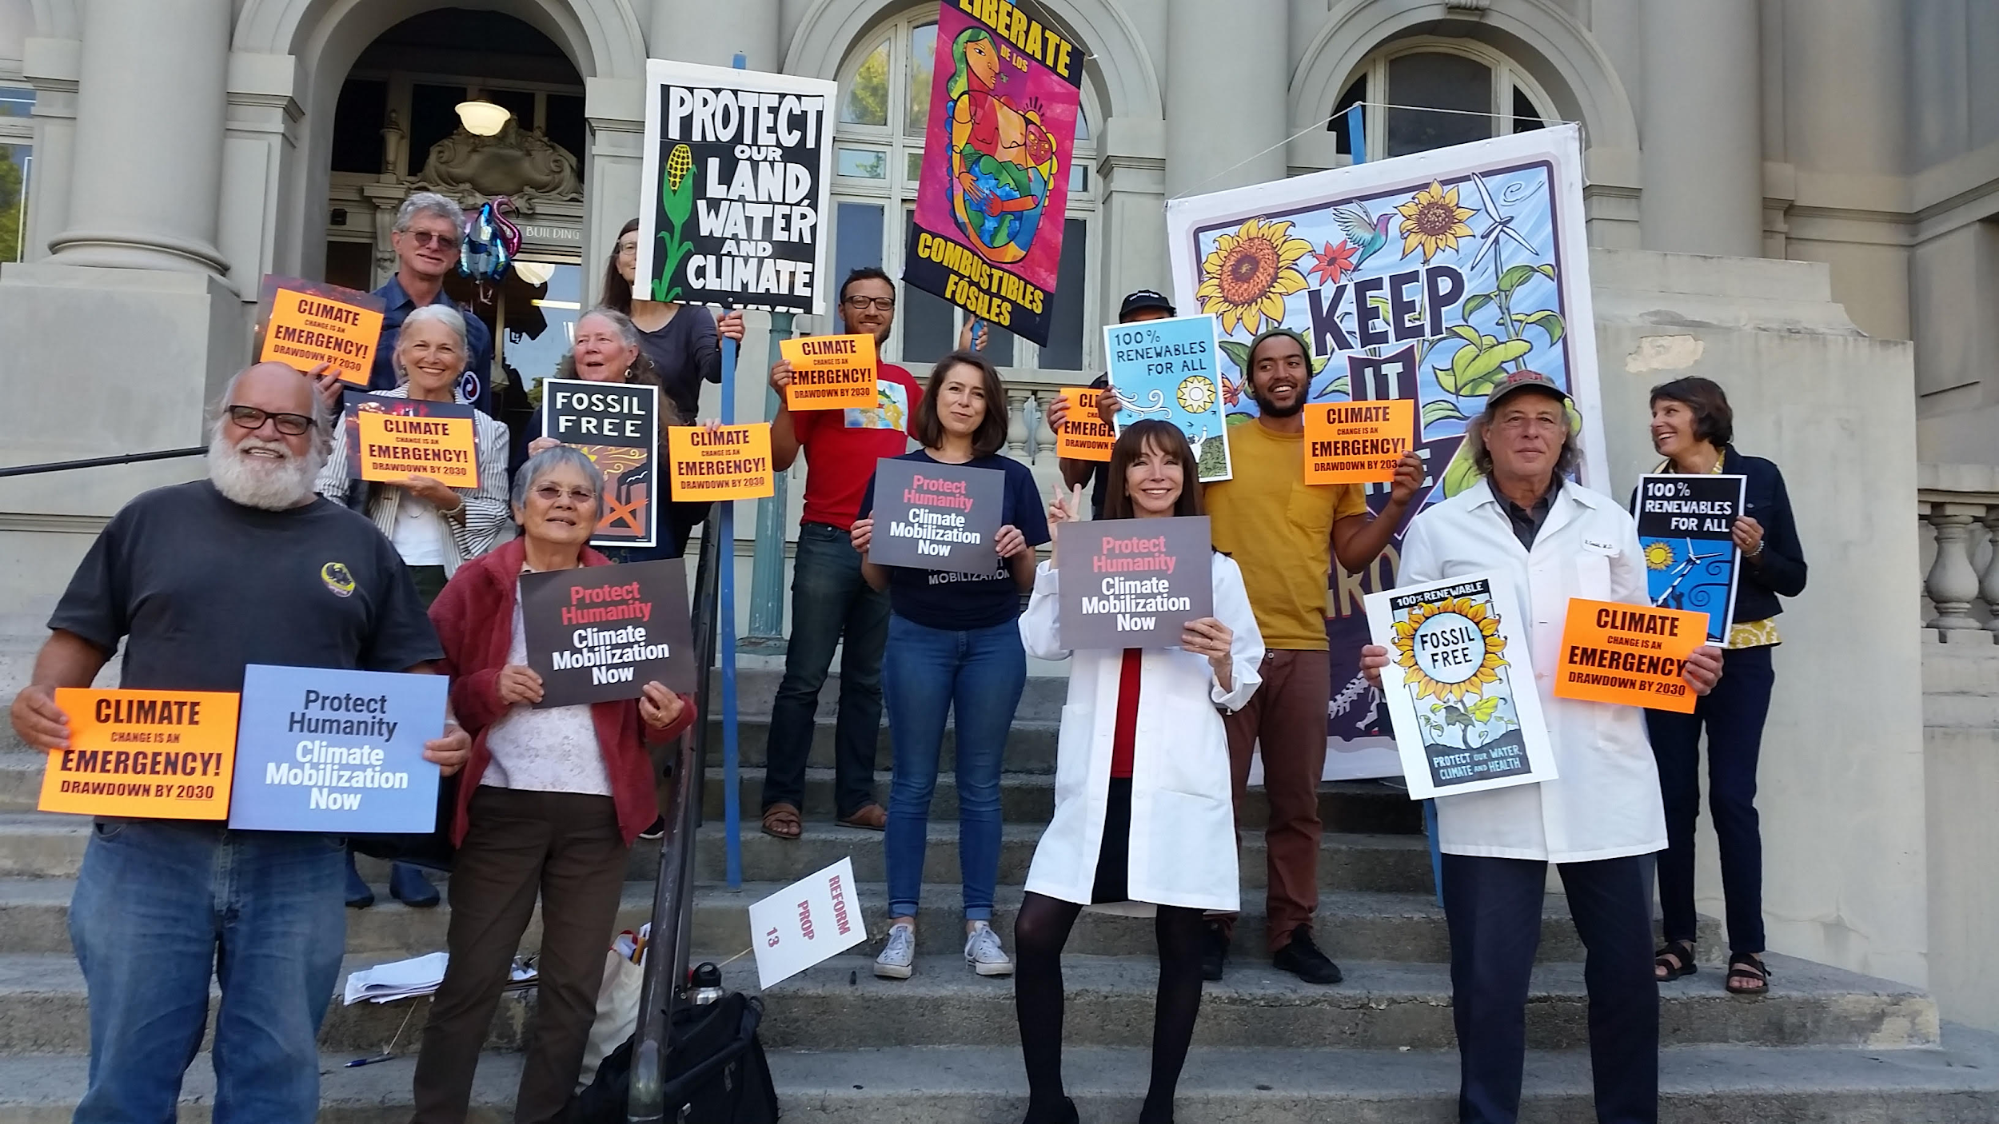 Climate Mobilization, 350, Physicians for Social Responsibility demonstrate their support for the emergency declaration before the Council Meeting.